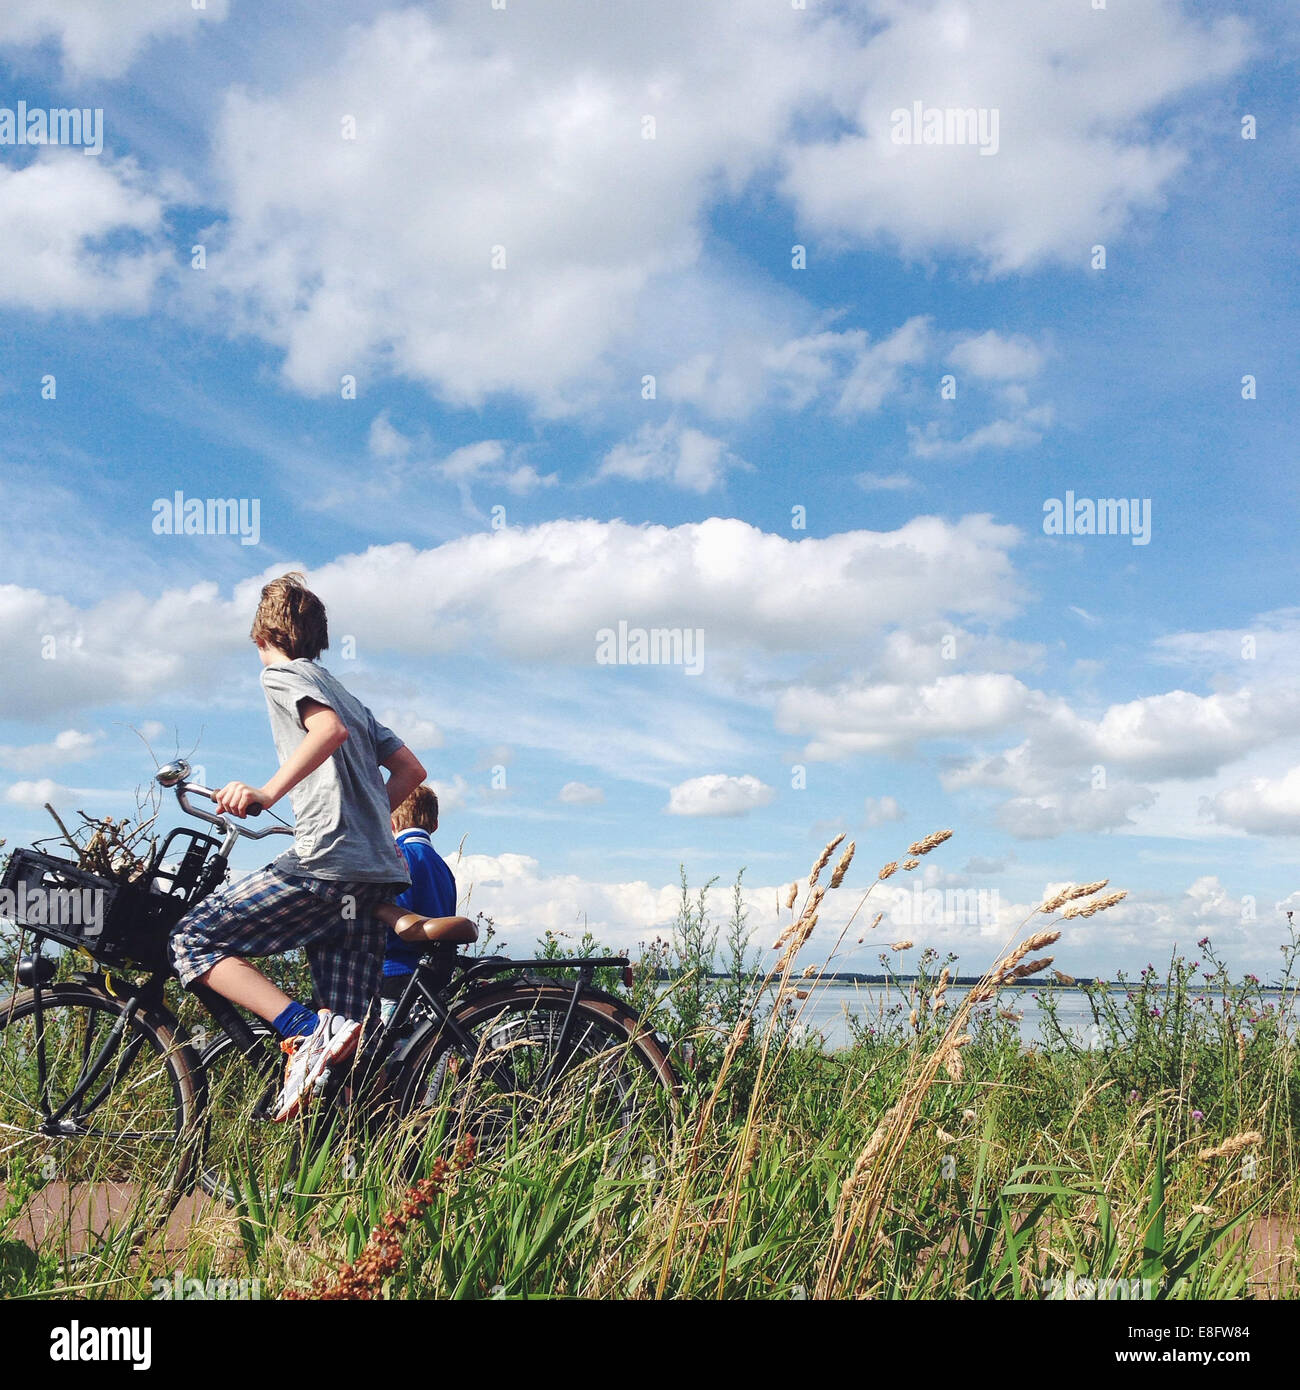 Netherlands, Two boys (10-11) biking near sea - Stock Image